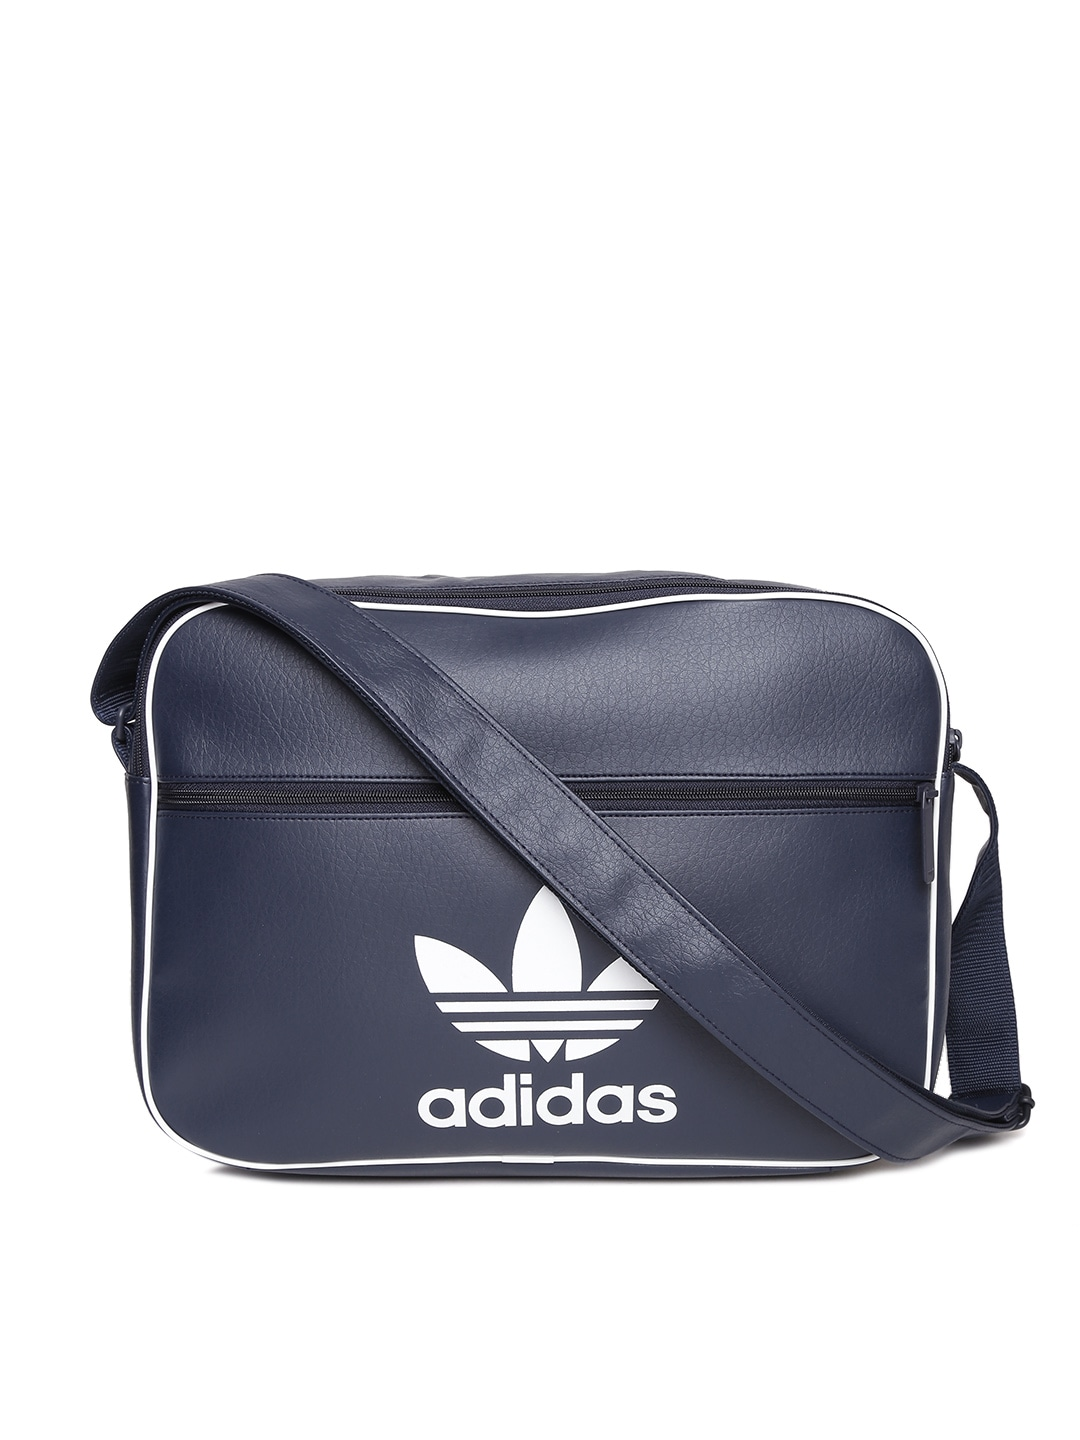 Buy adidas messenger bags for men   OFF65% Discounted